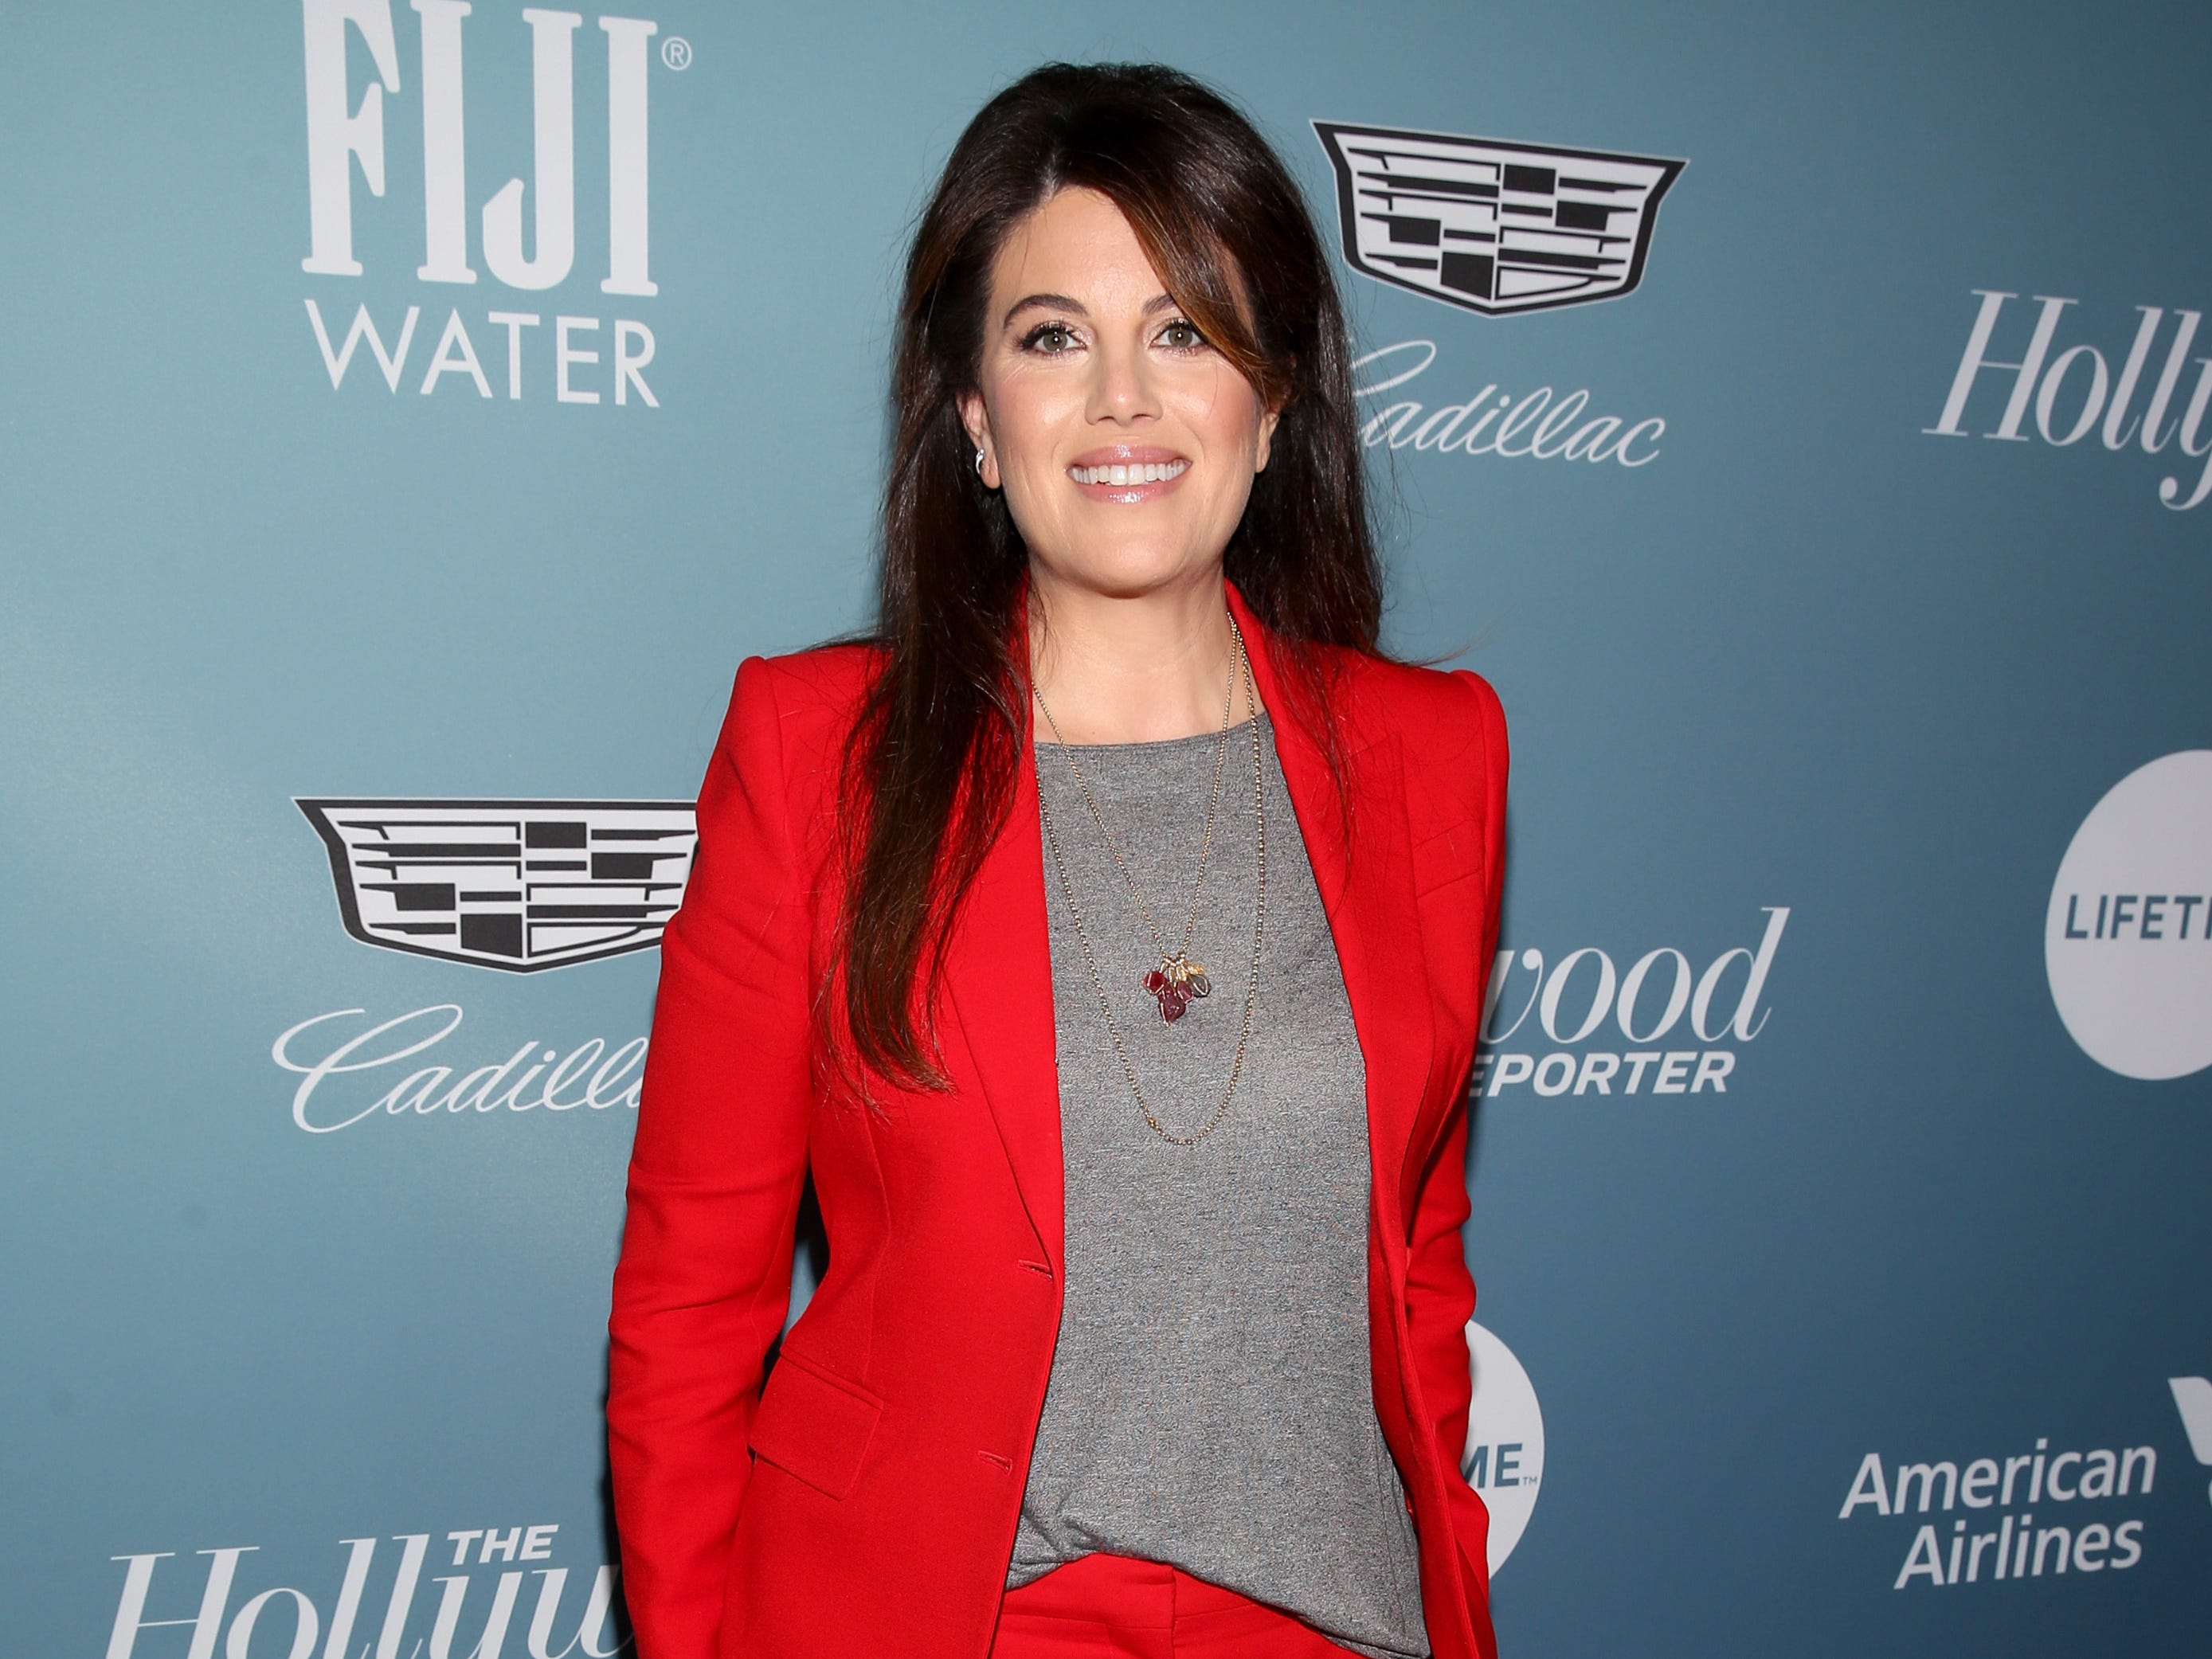 LOS ANGELES, CA - DECEMBER 05:  Monica Lewinsky attends The Hollywood Reporter's Power 100 Women In Entertainment at Milk Studios on December 5, 2018 in Los Angeles, California.  (Photo by Jesse Grant/Getty Images for The Hollywood Reporter ) ORG XMIT: 775264611 ORIG FILE ID: 1068728662